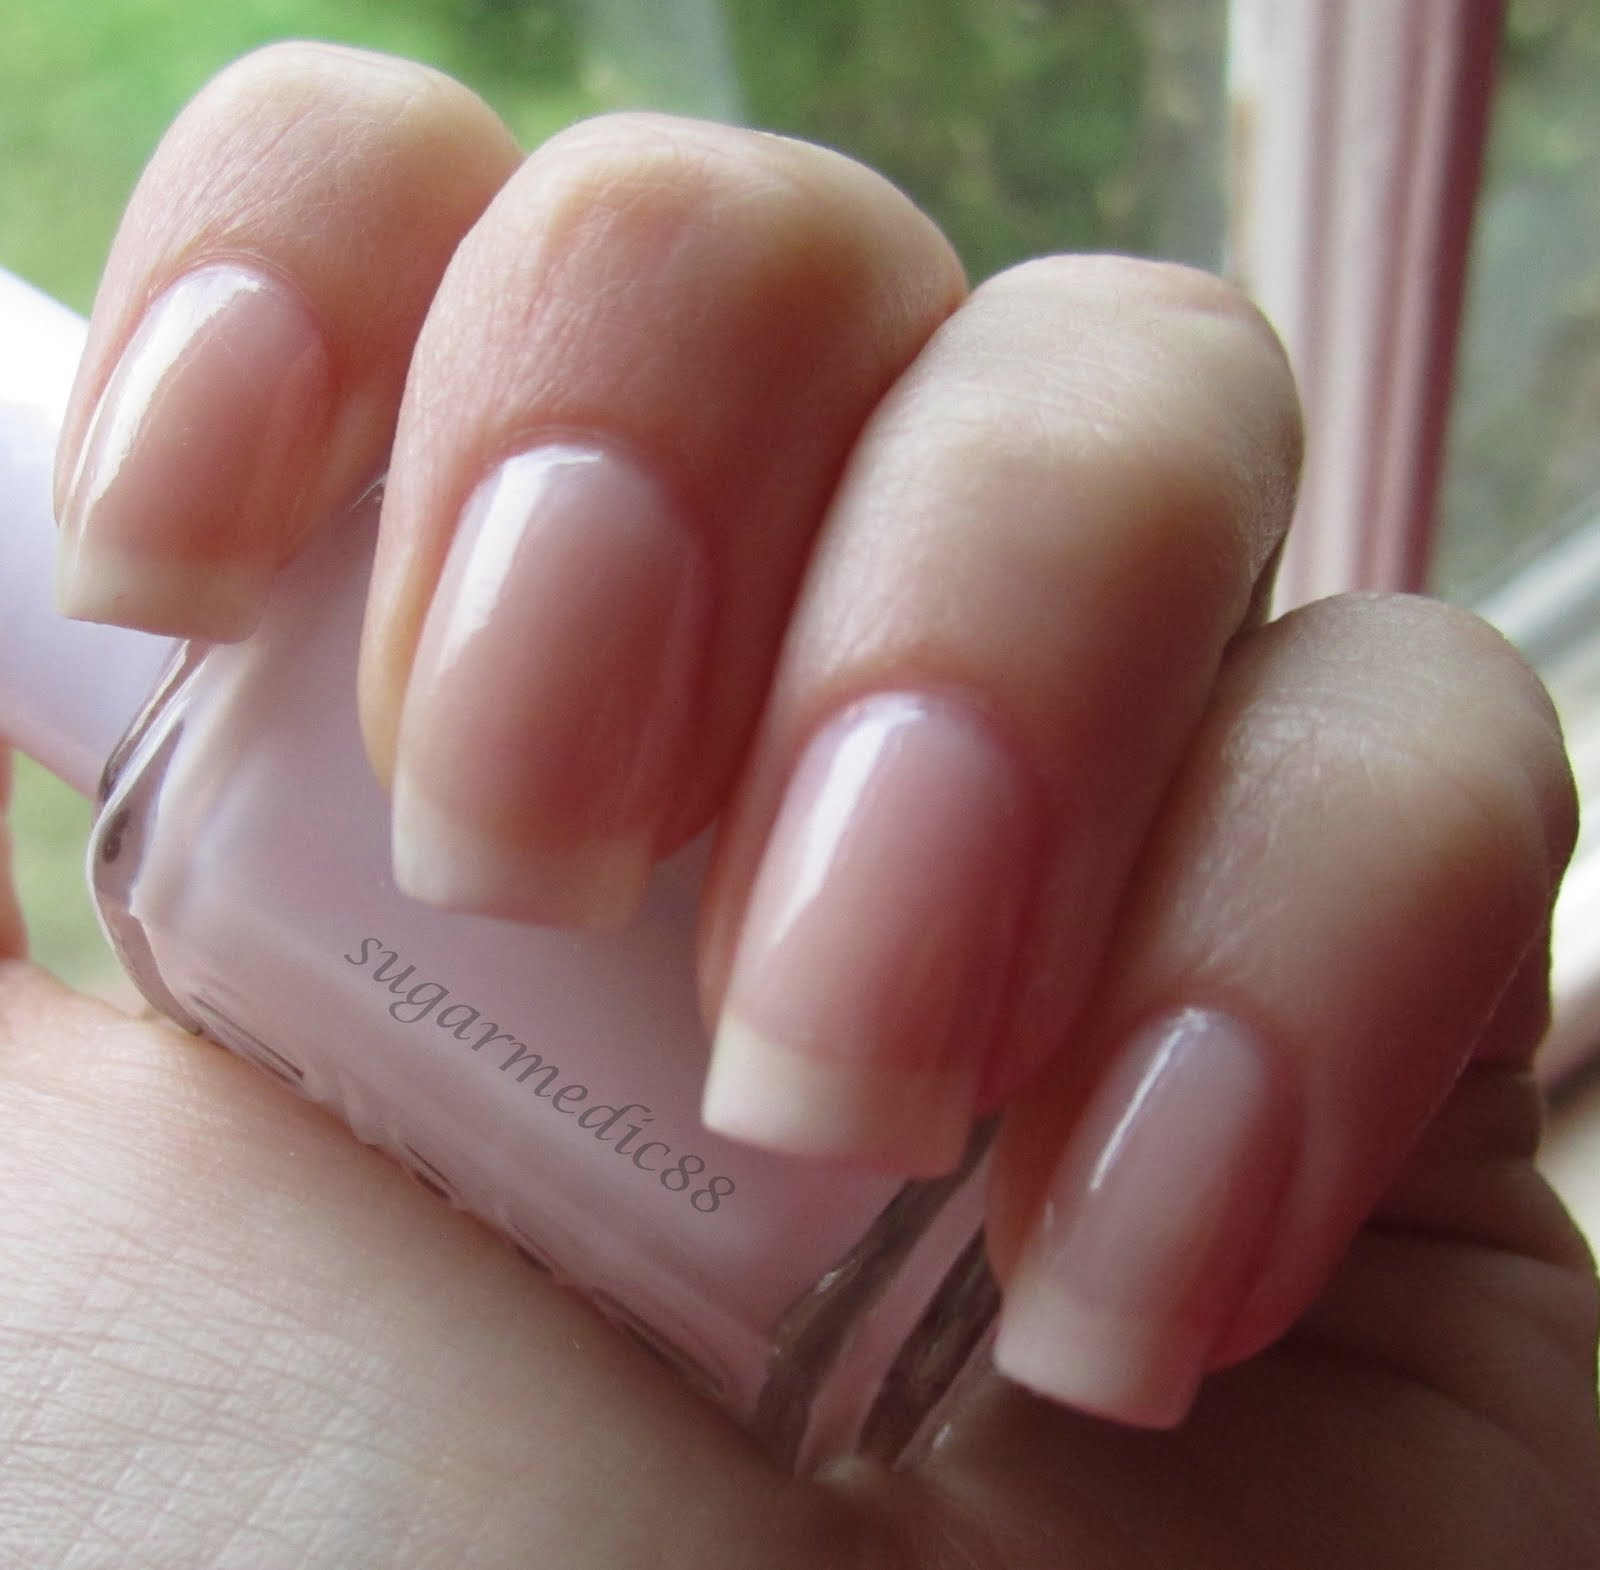 The Polished Medic: Simple&Sheer Essie Mademoiselle (edit) and A ...